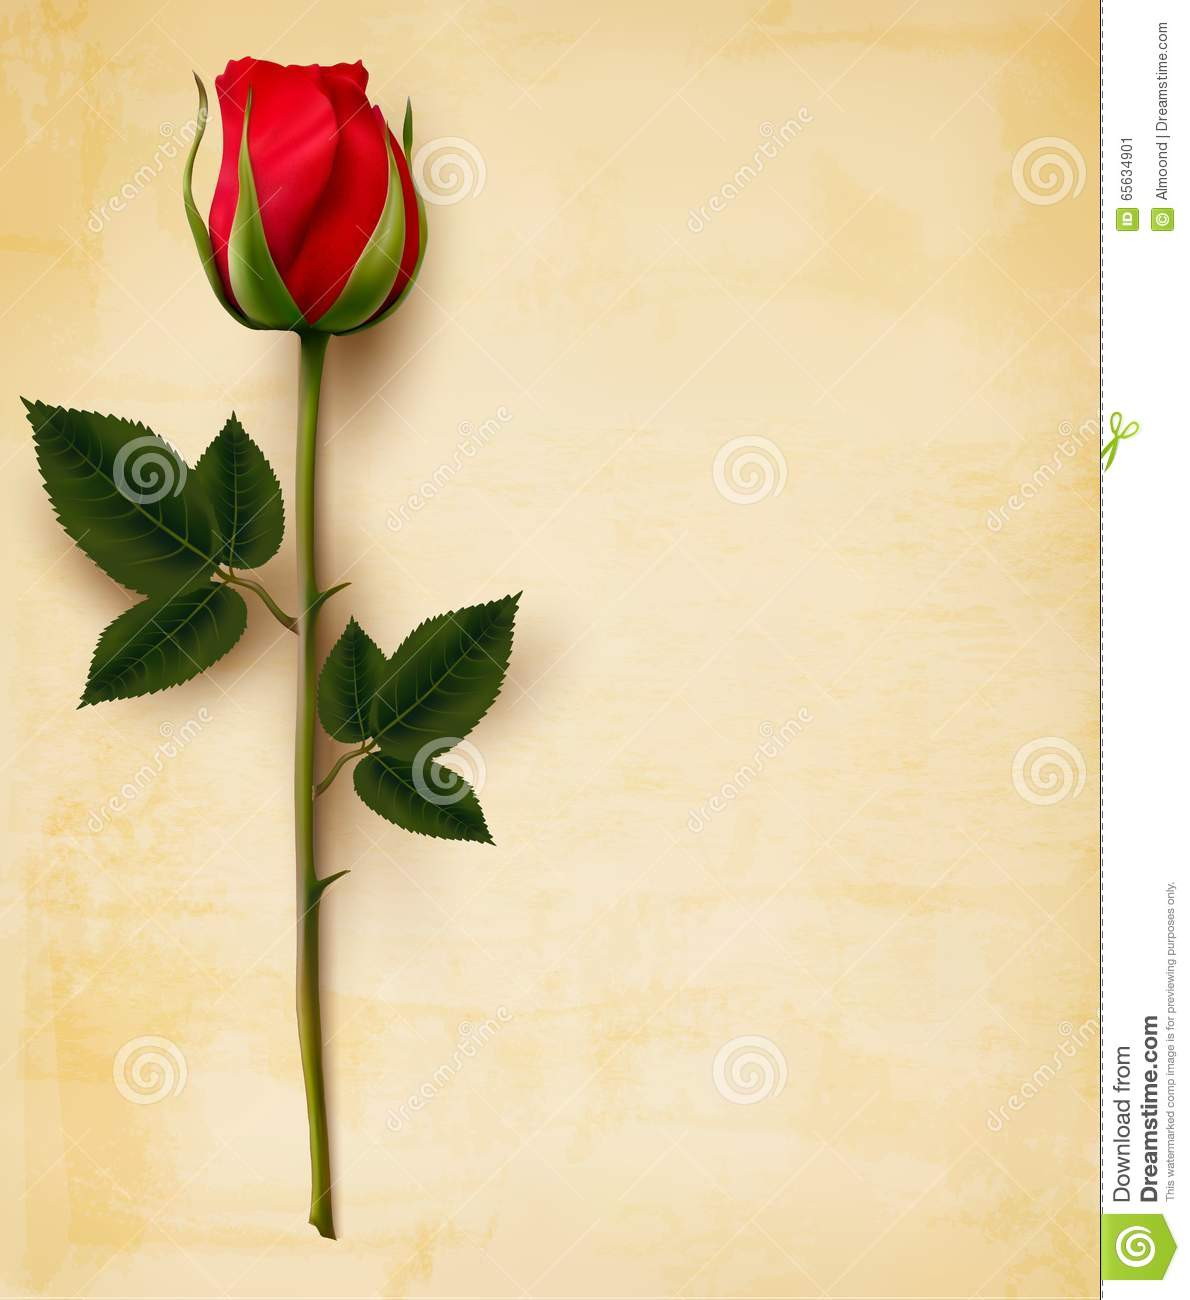 red red rose essay Analysis of burn's poem a red, red rose - analysis of burn's poem a red, red rose 'a red, red rose', was first published in 1794 in a selection of scots songs, edited by peter urbani.